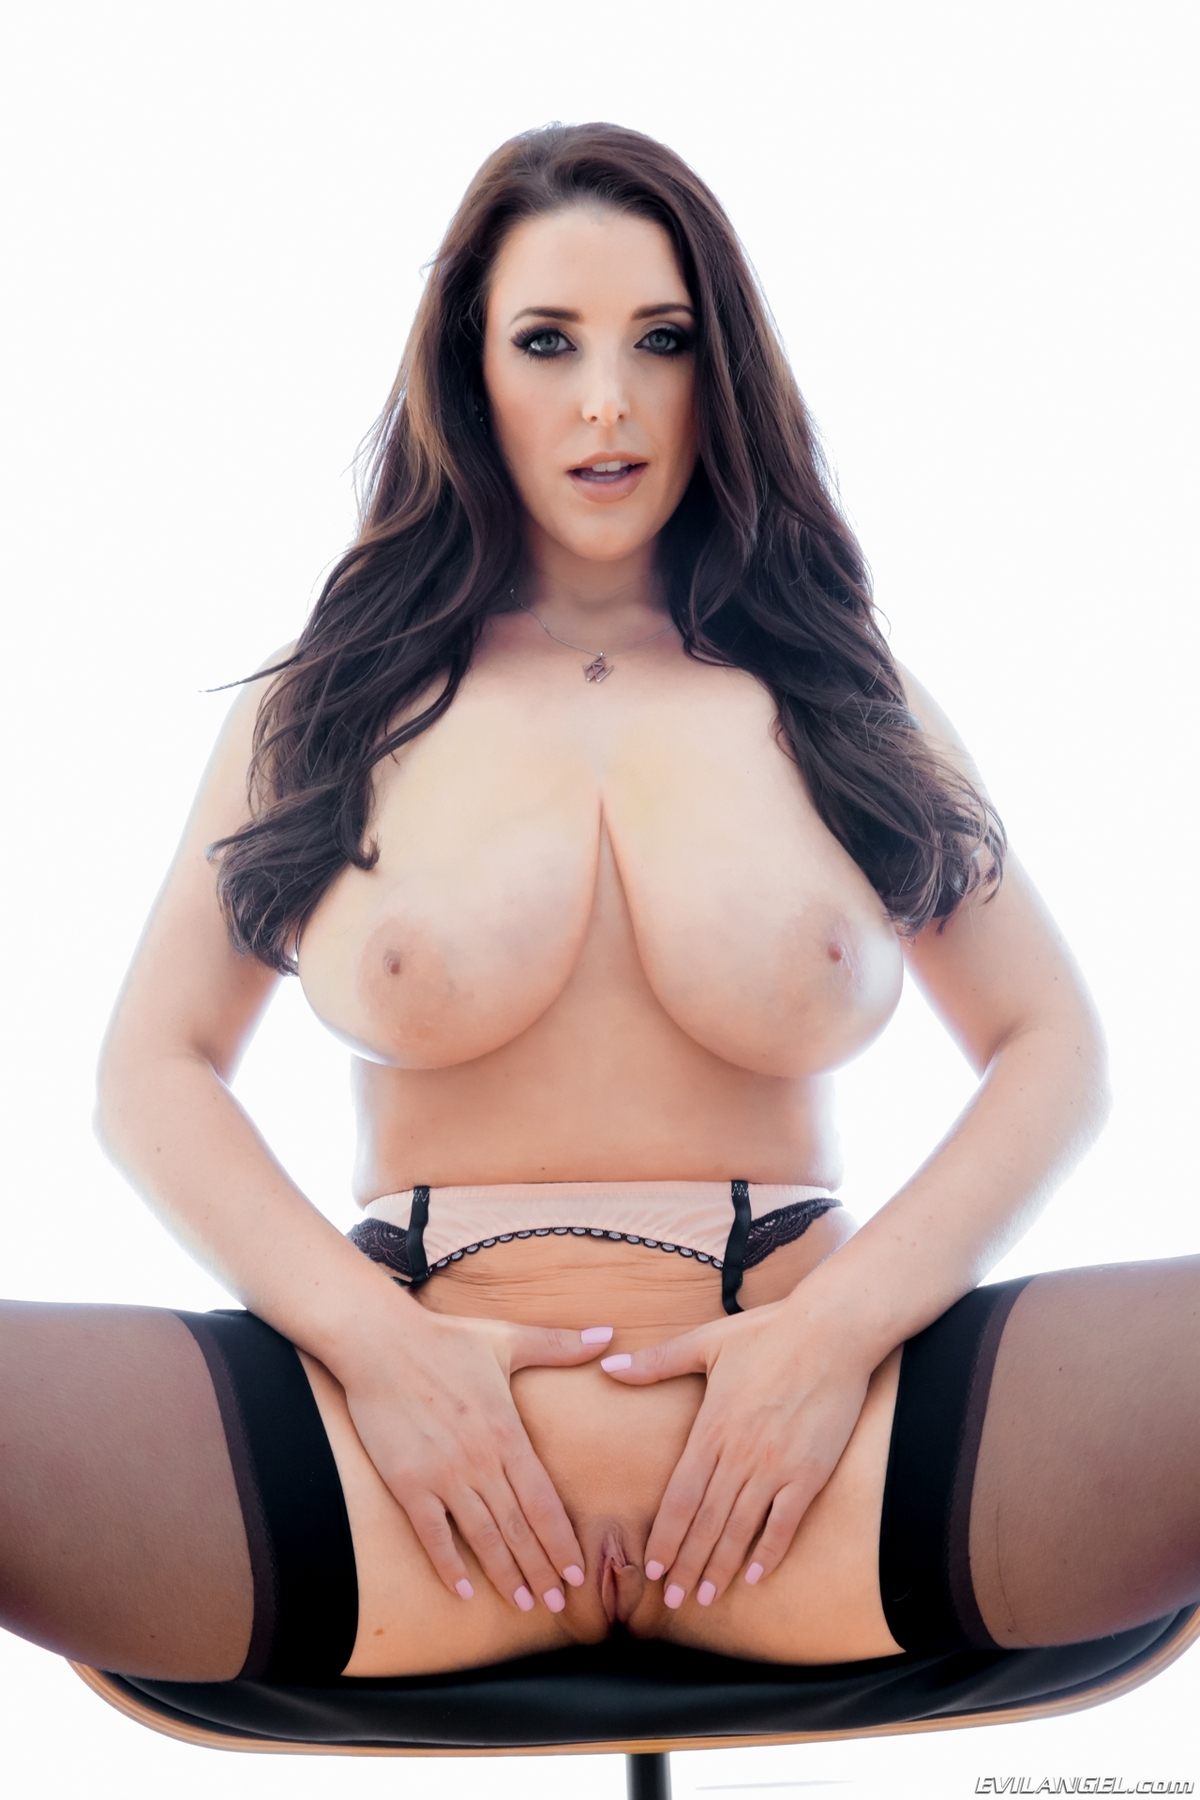 Huge Boobed Pornstar in Stockings - picture 07